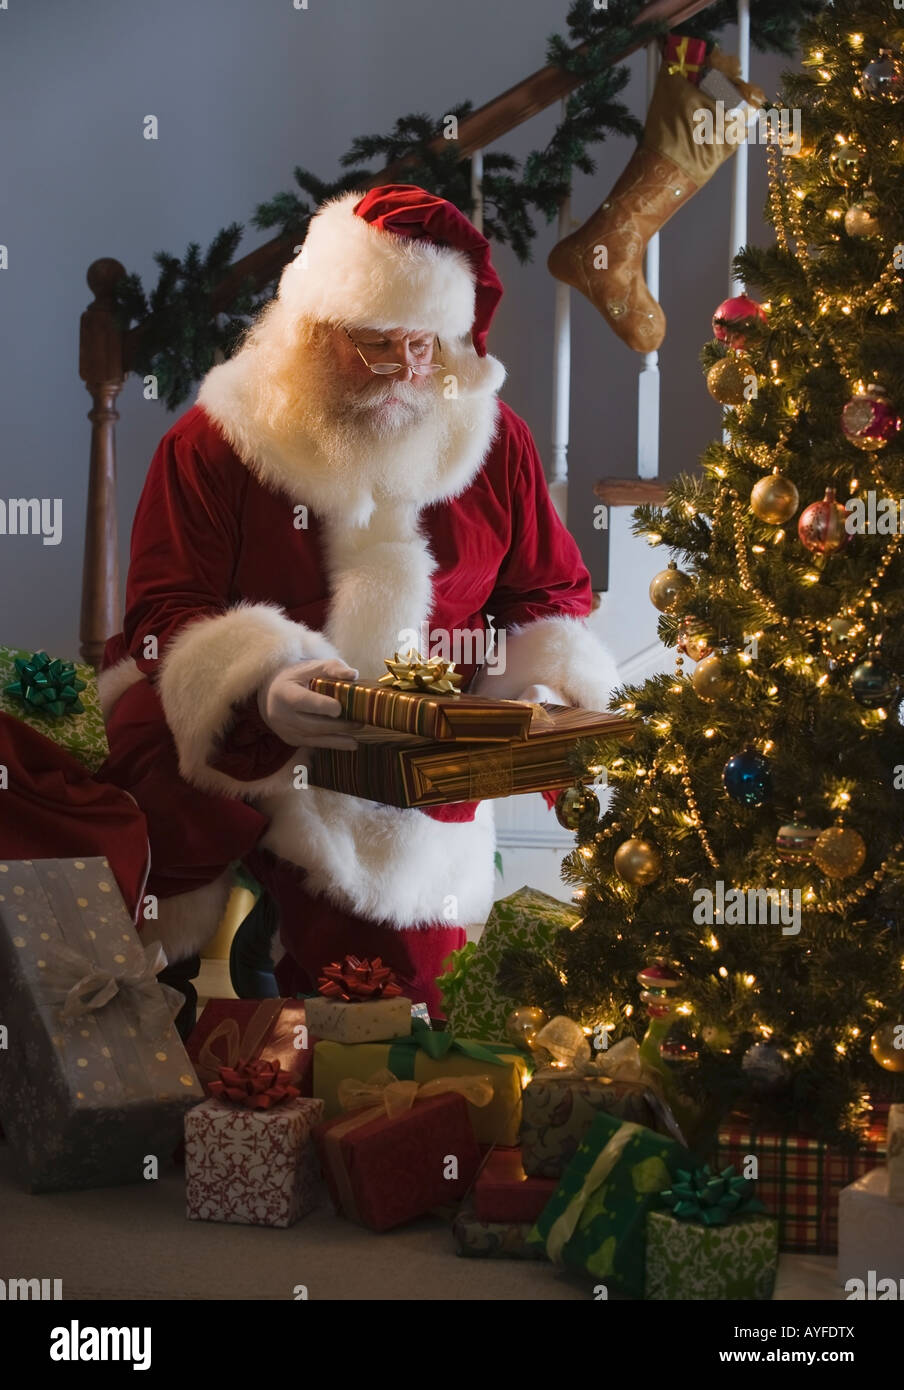 Santa Claus Leaving Gifts Under